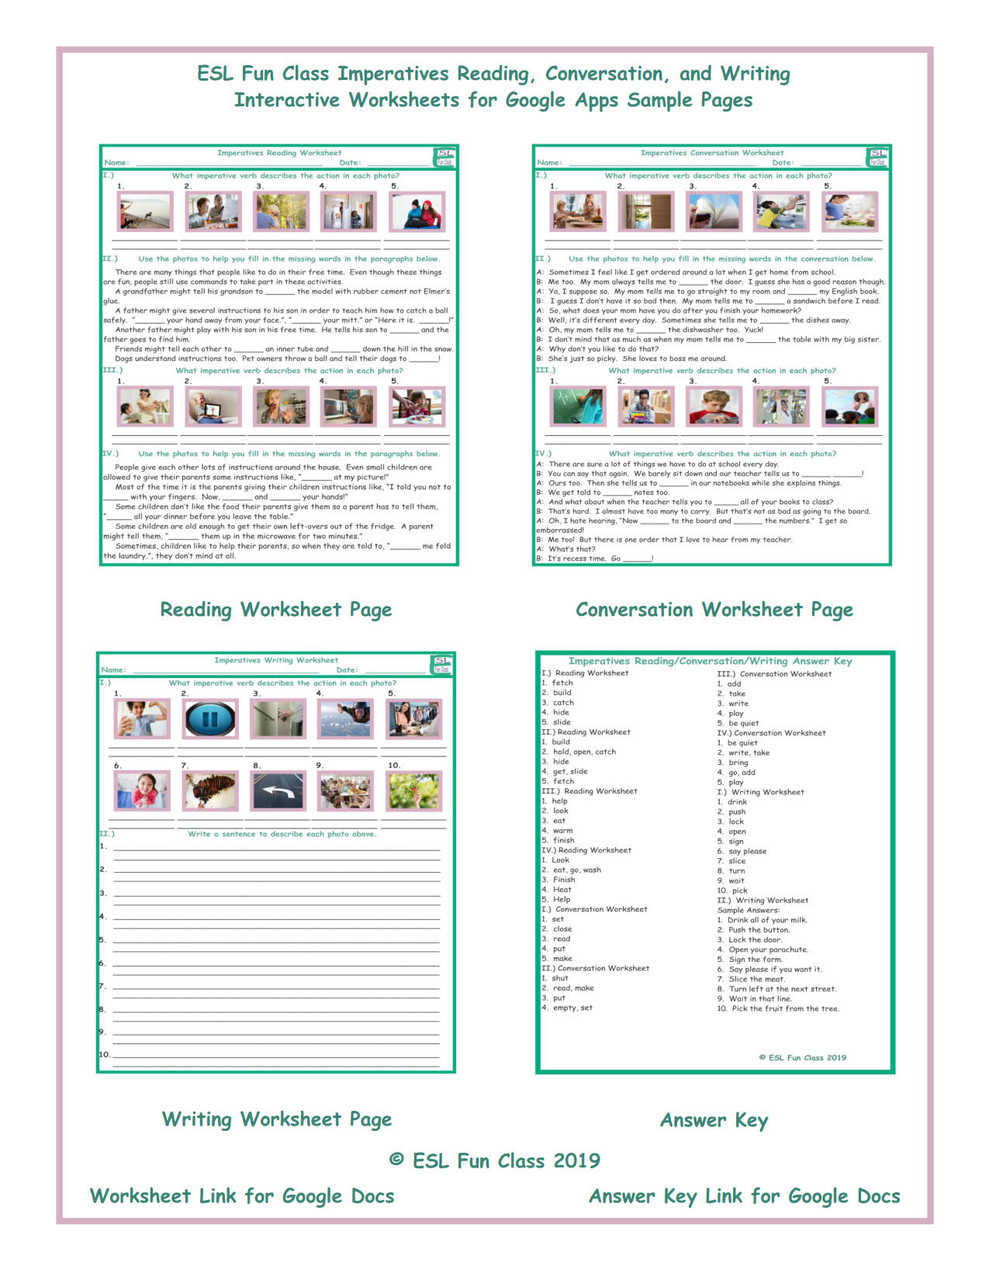 - Imperatives Read-Converse-Write Interactive Worksheets For Google